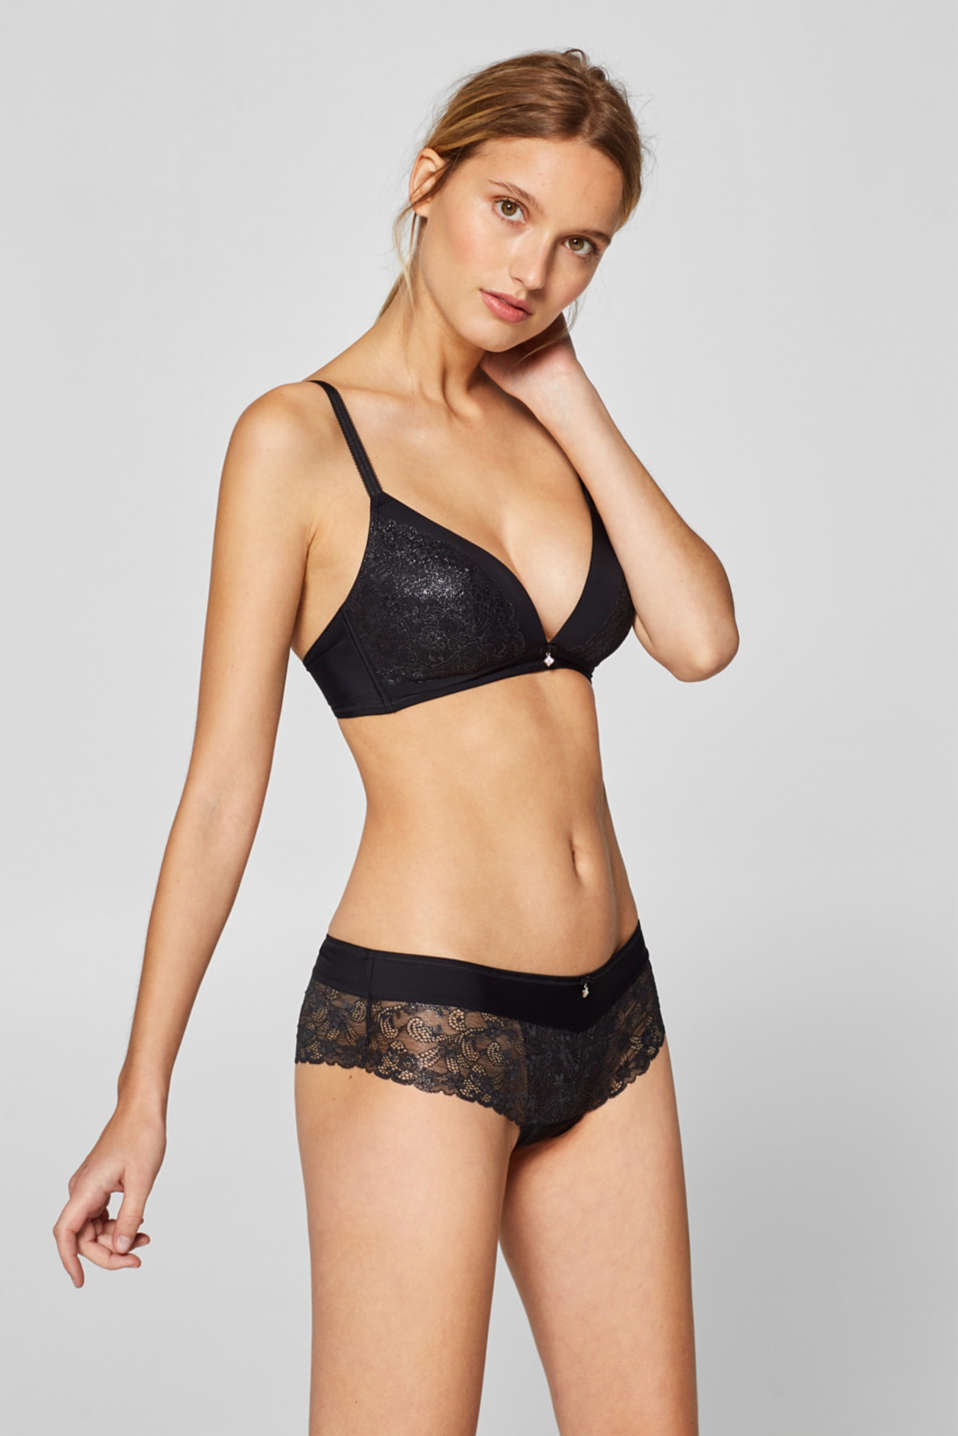 Esprit - Padded, wireless bra with glittering lace